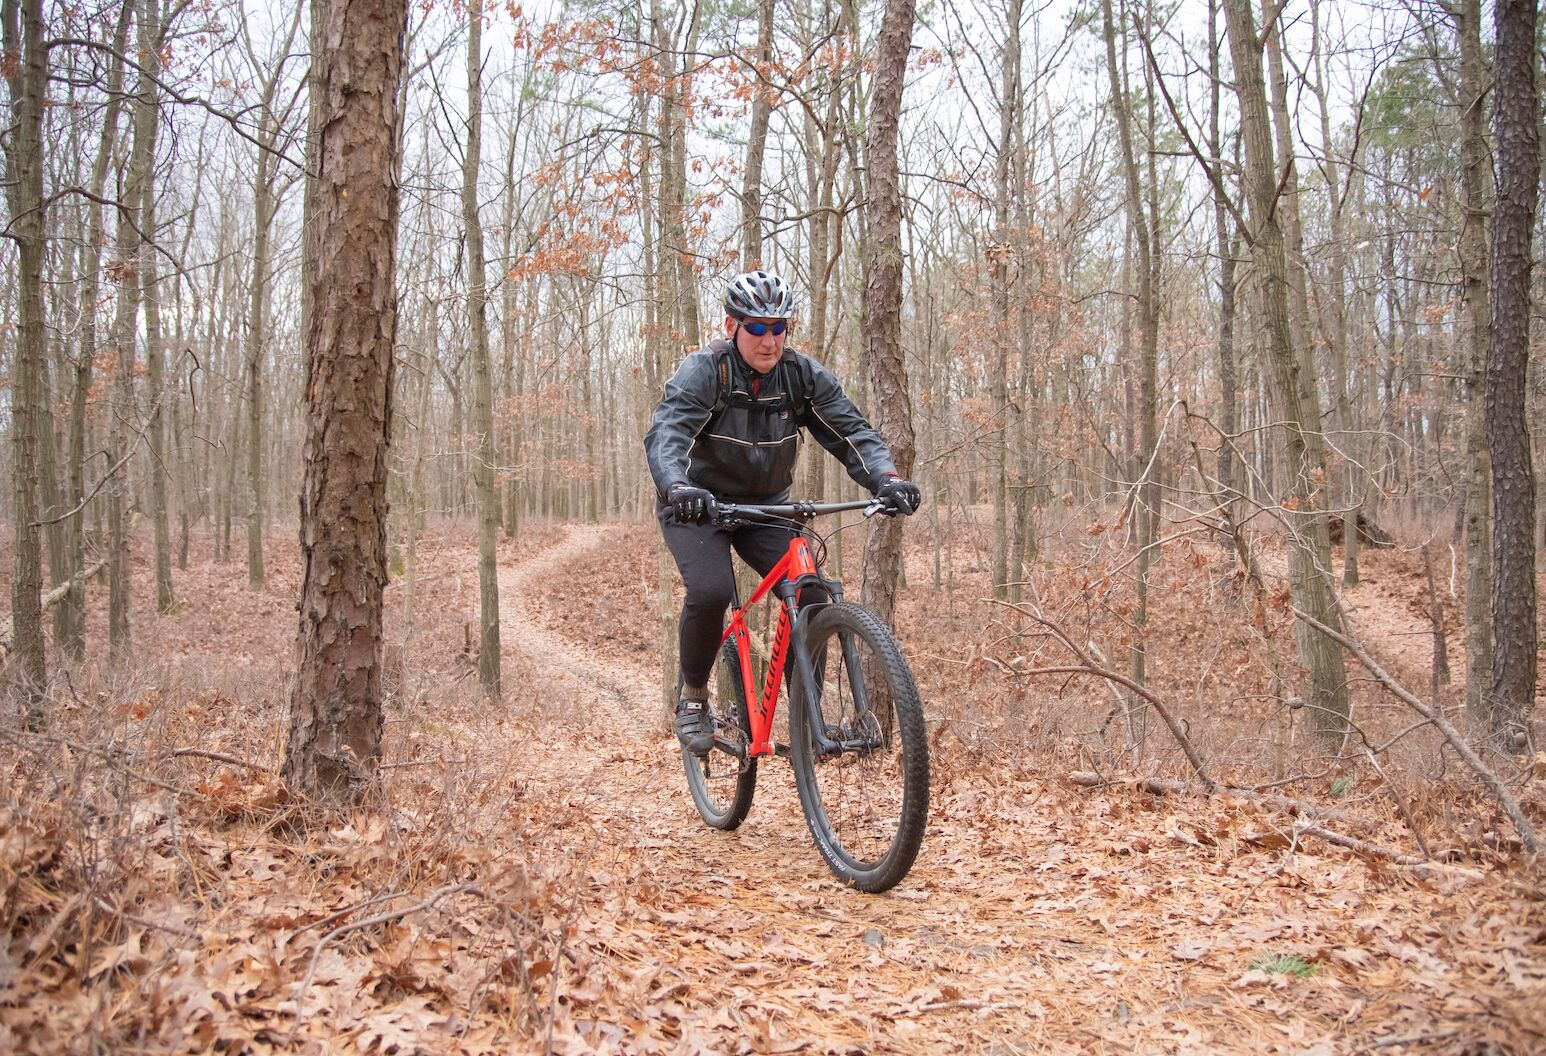 John Krafinski rides his bike in the woods.